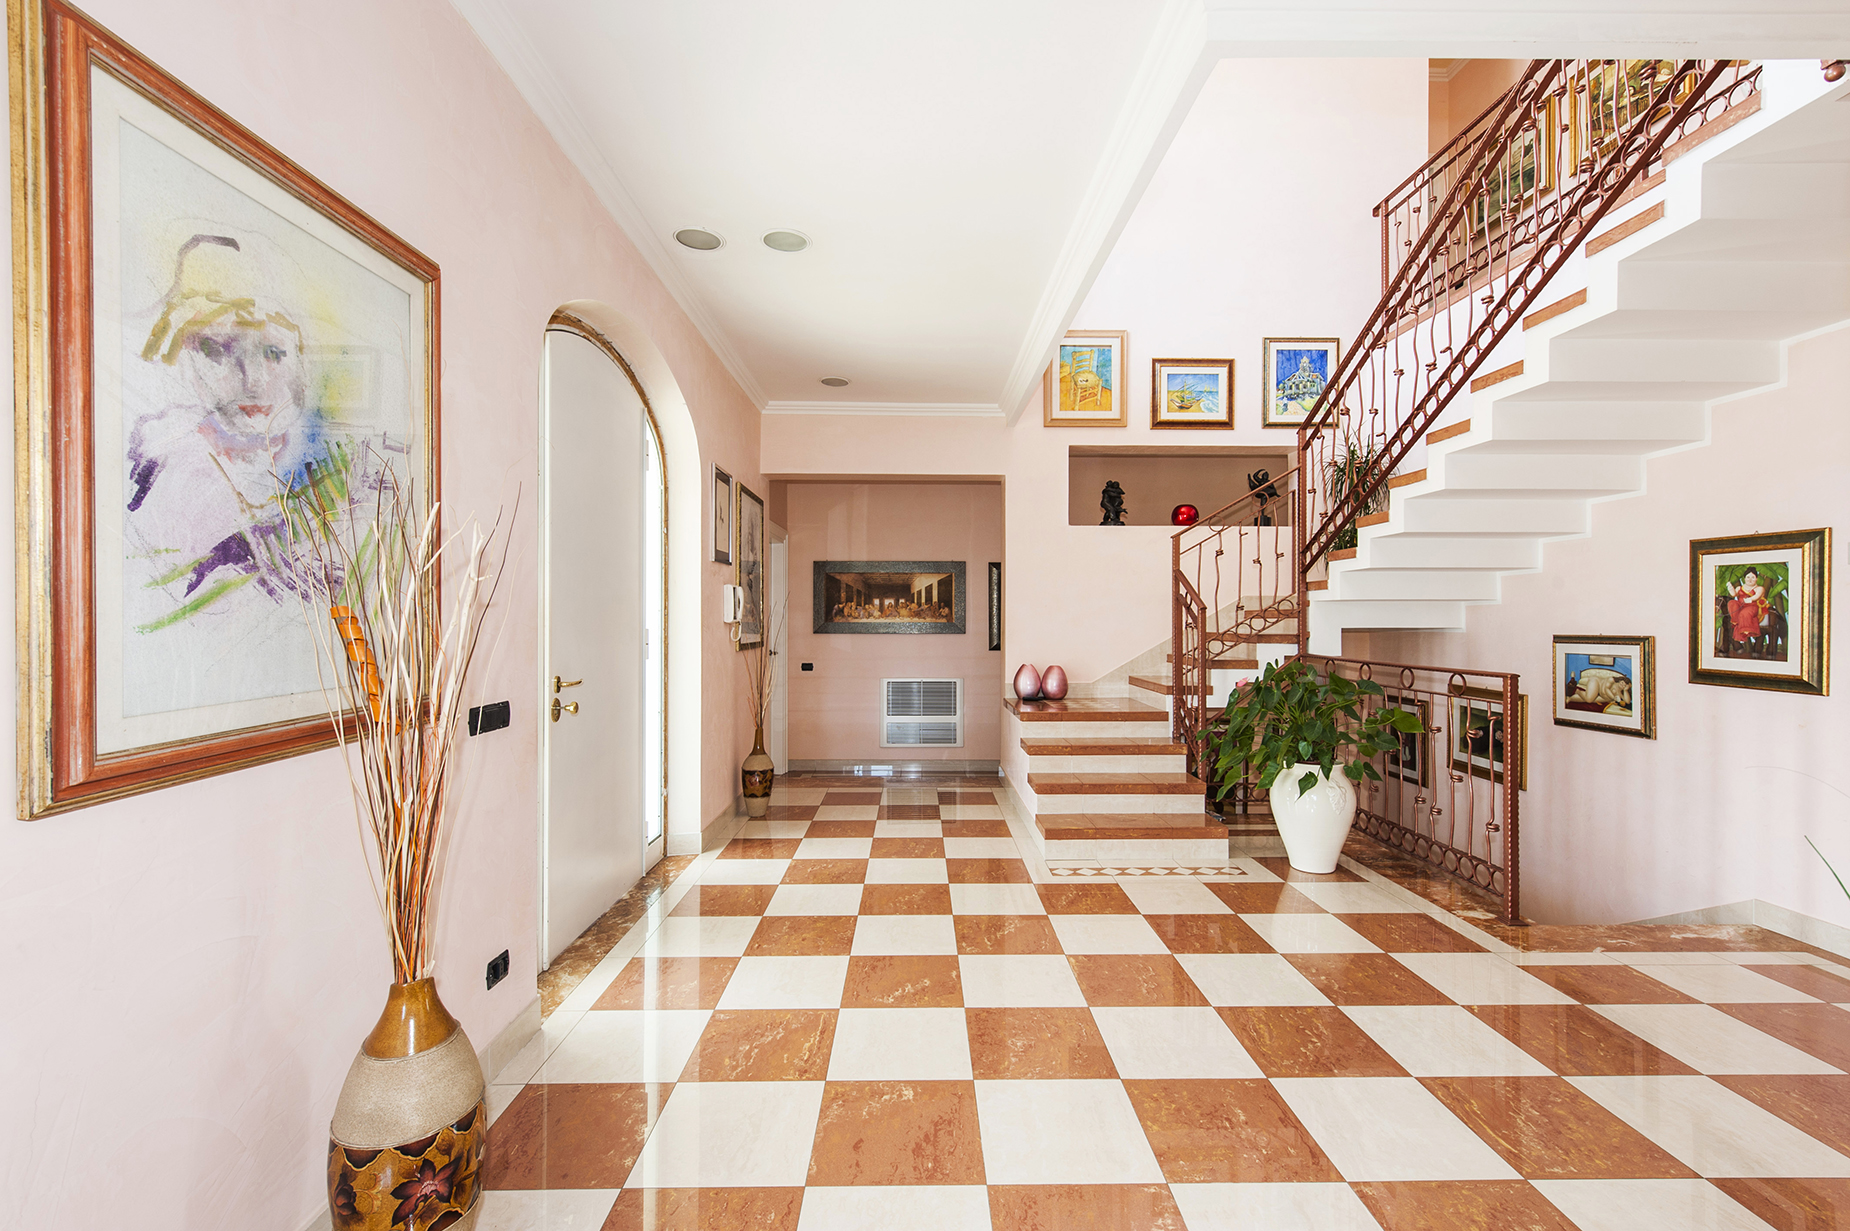 Additional photo for property listing at Villa in Liberty style recently built Rome, Rome Italy